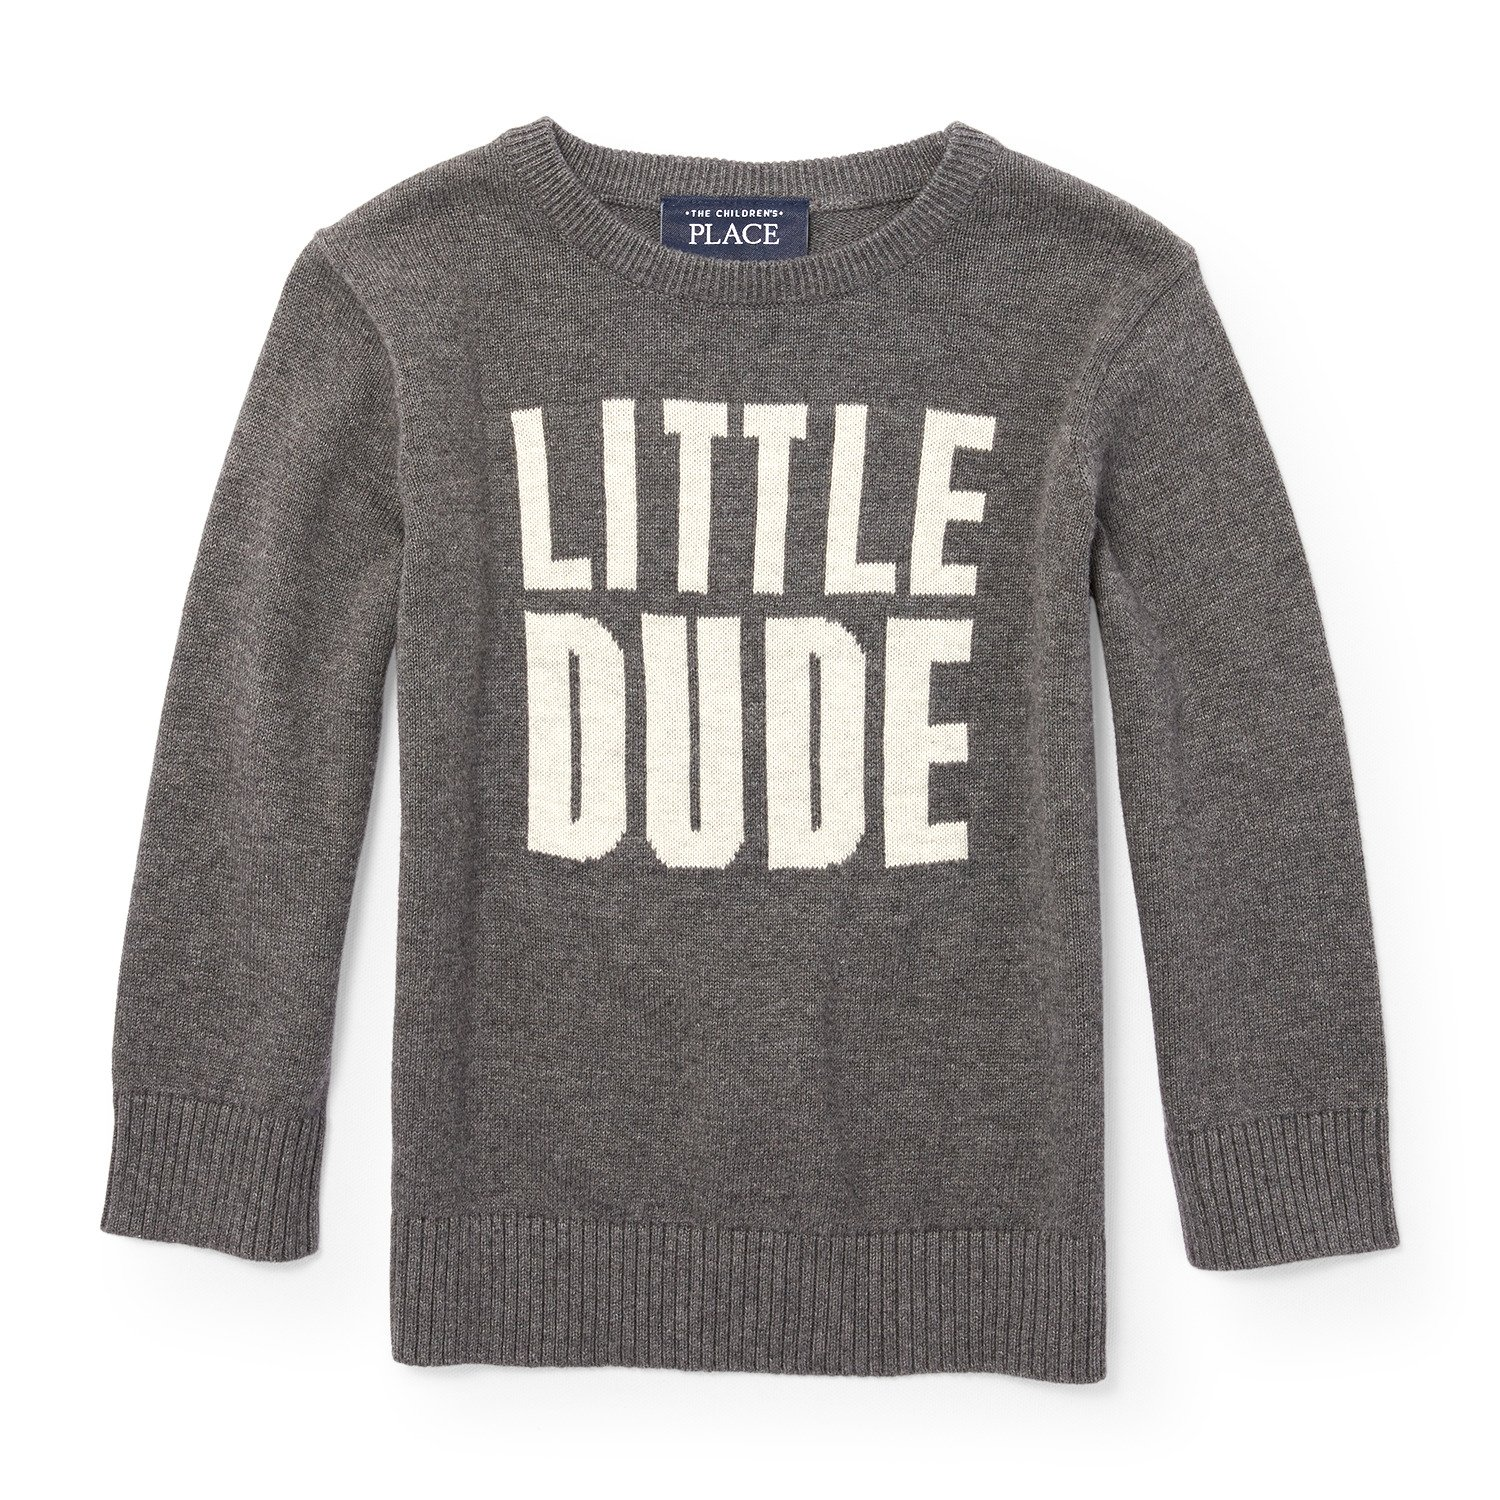 The Children's Place Boys' Intarsia Sweater, H/T Eclipse 87551, 18-24MONTH